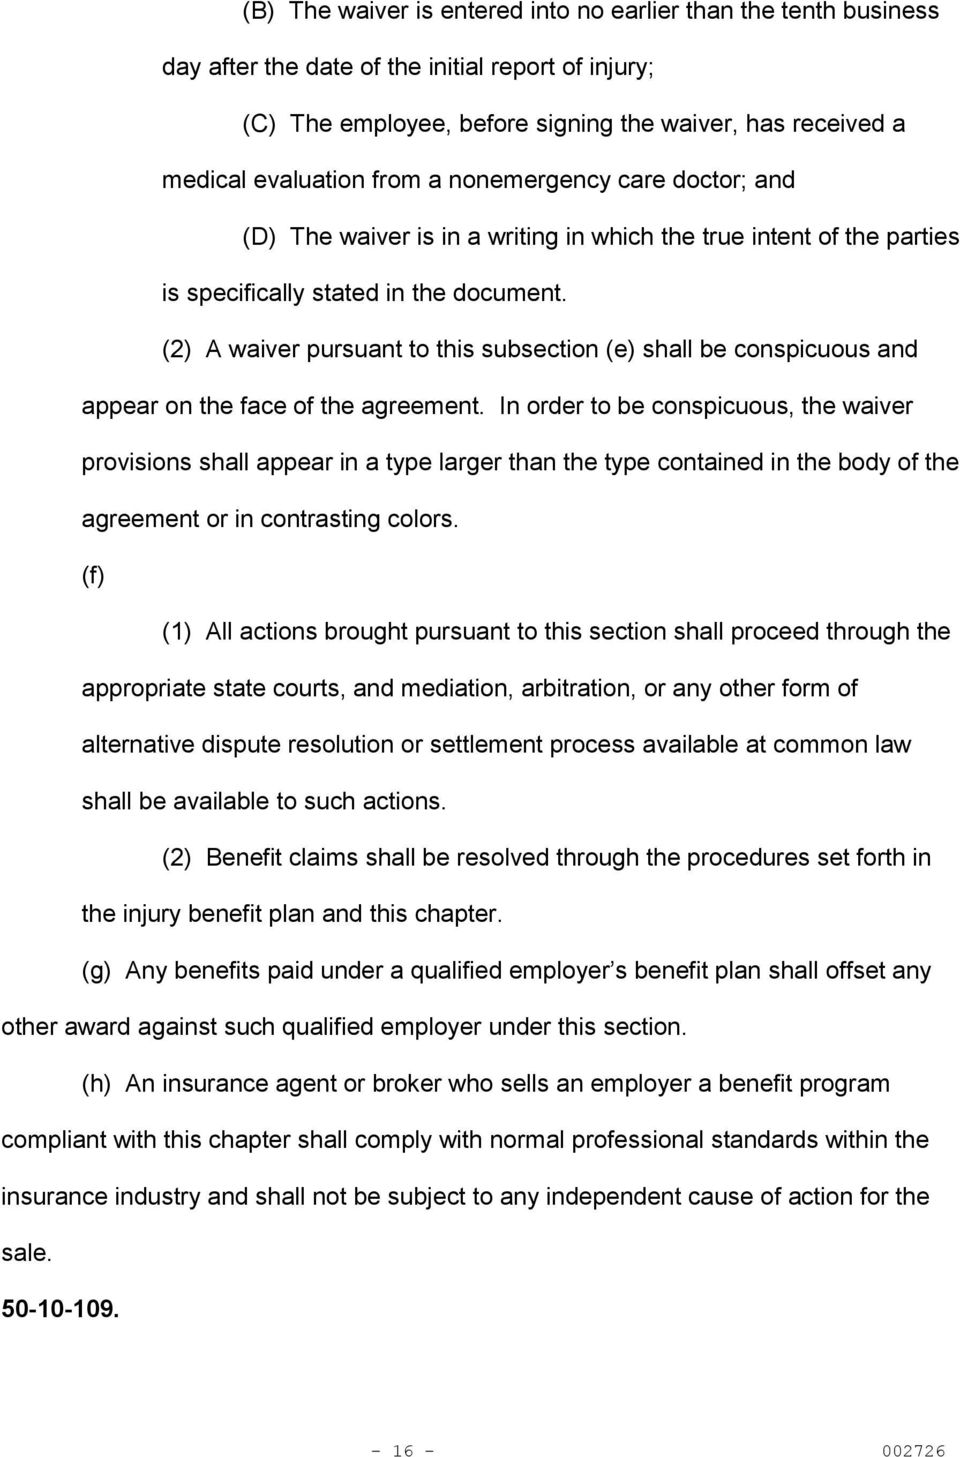 (2) A waiver pursuant to this subsection (e) shall be conspicuous and appear on the face of the agreement.